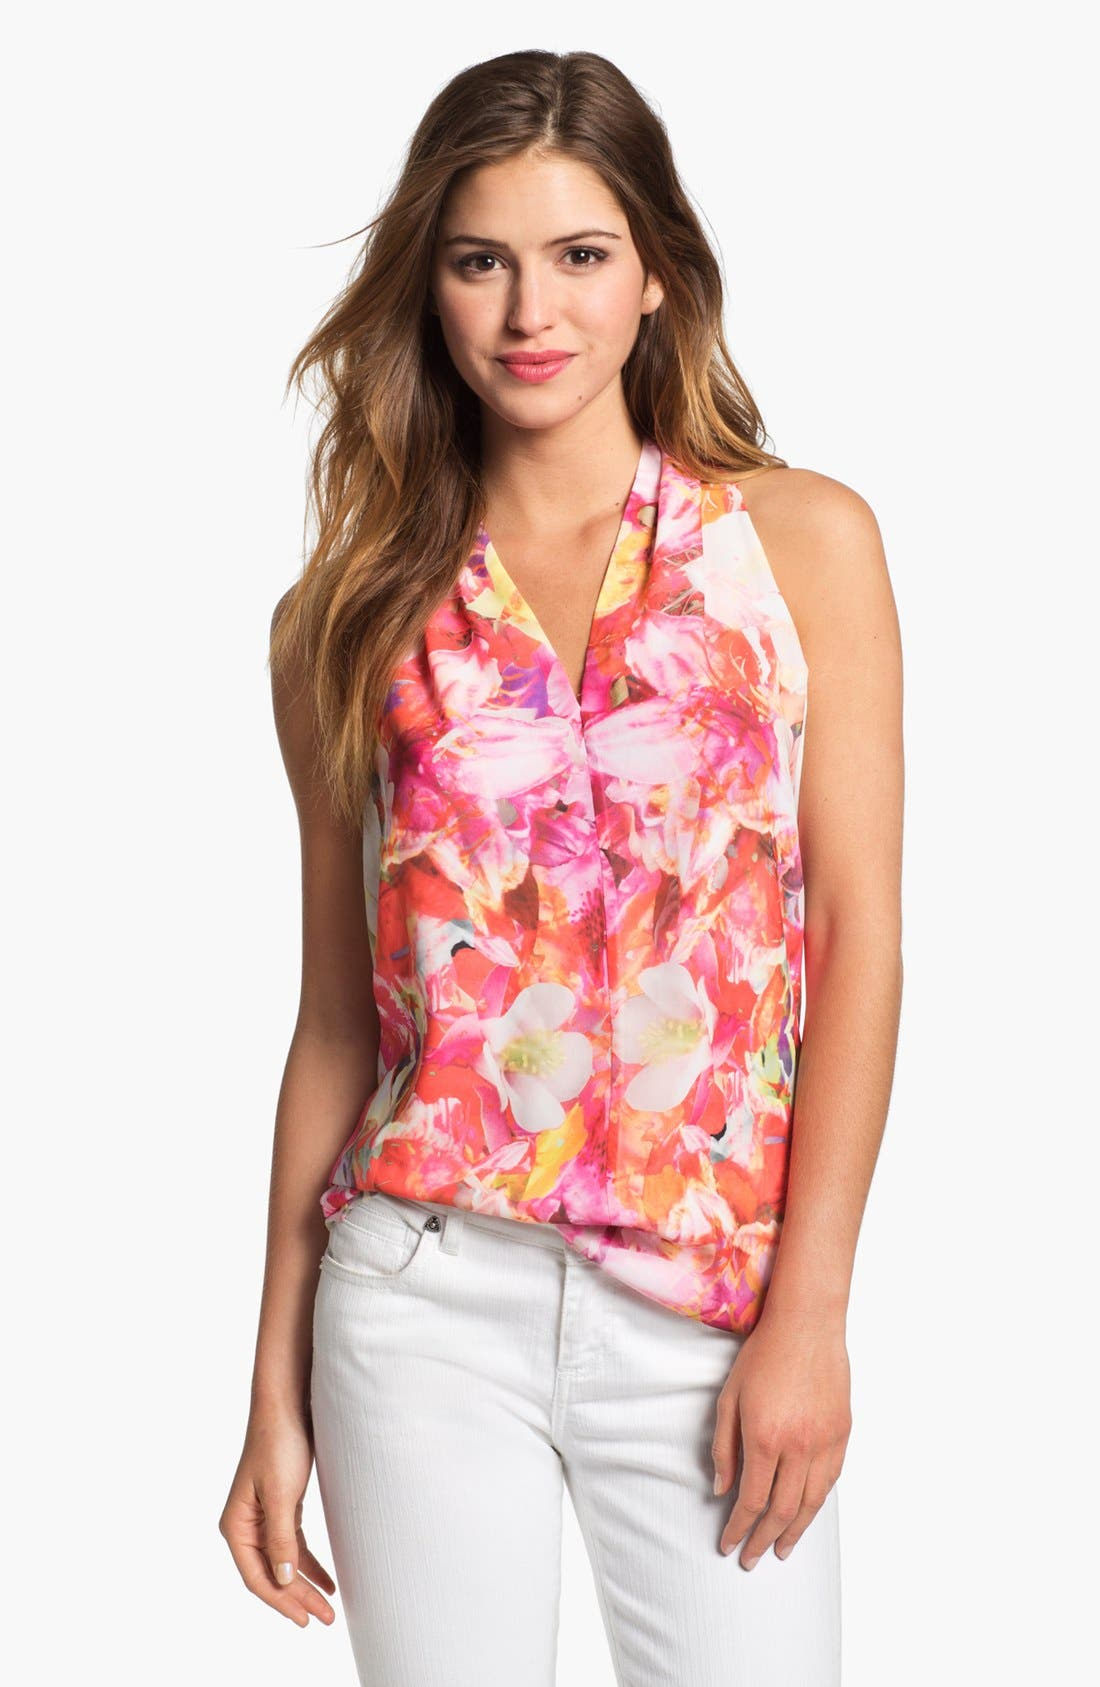 Alternate Image 1 Selected - Vince Camuto 'Corsage Floral' Sleeveless Blouse (Petite)